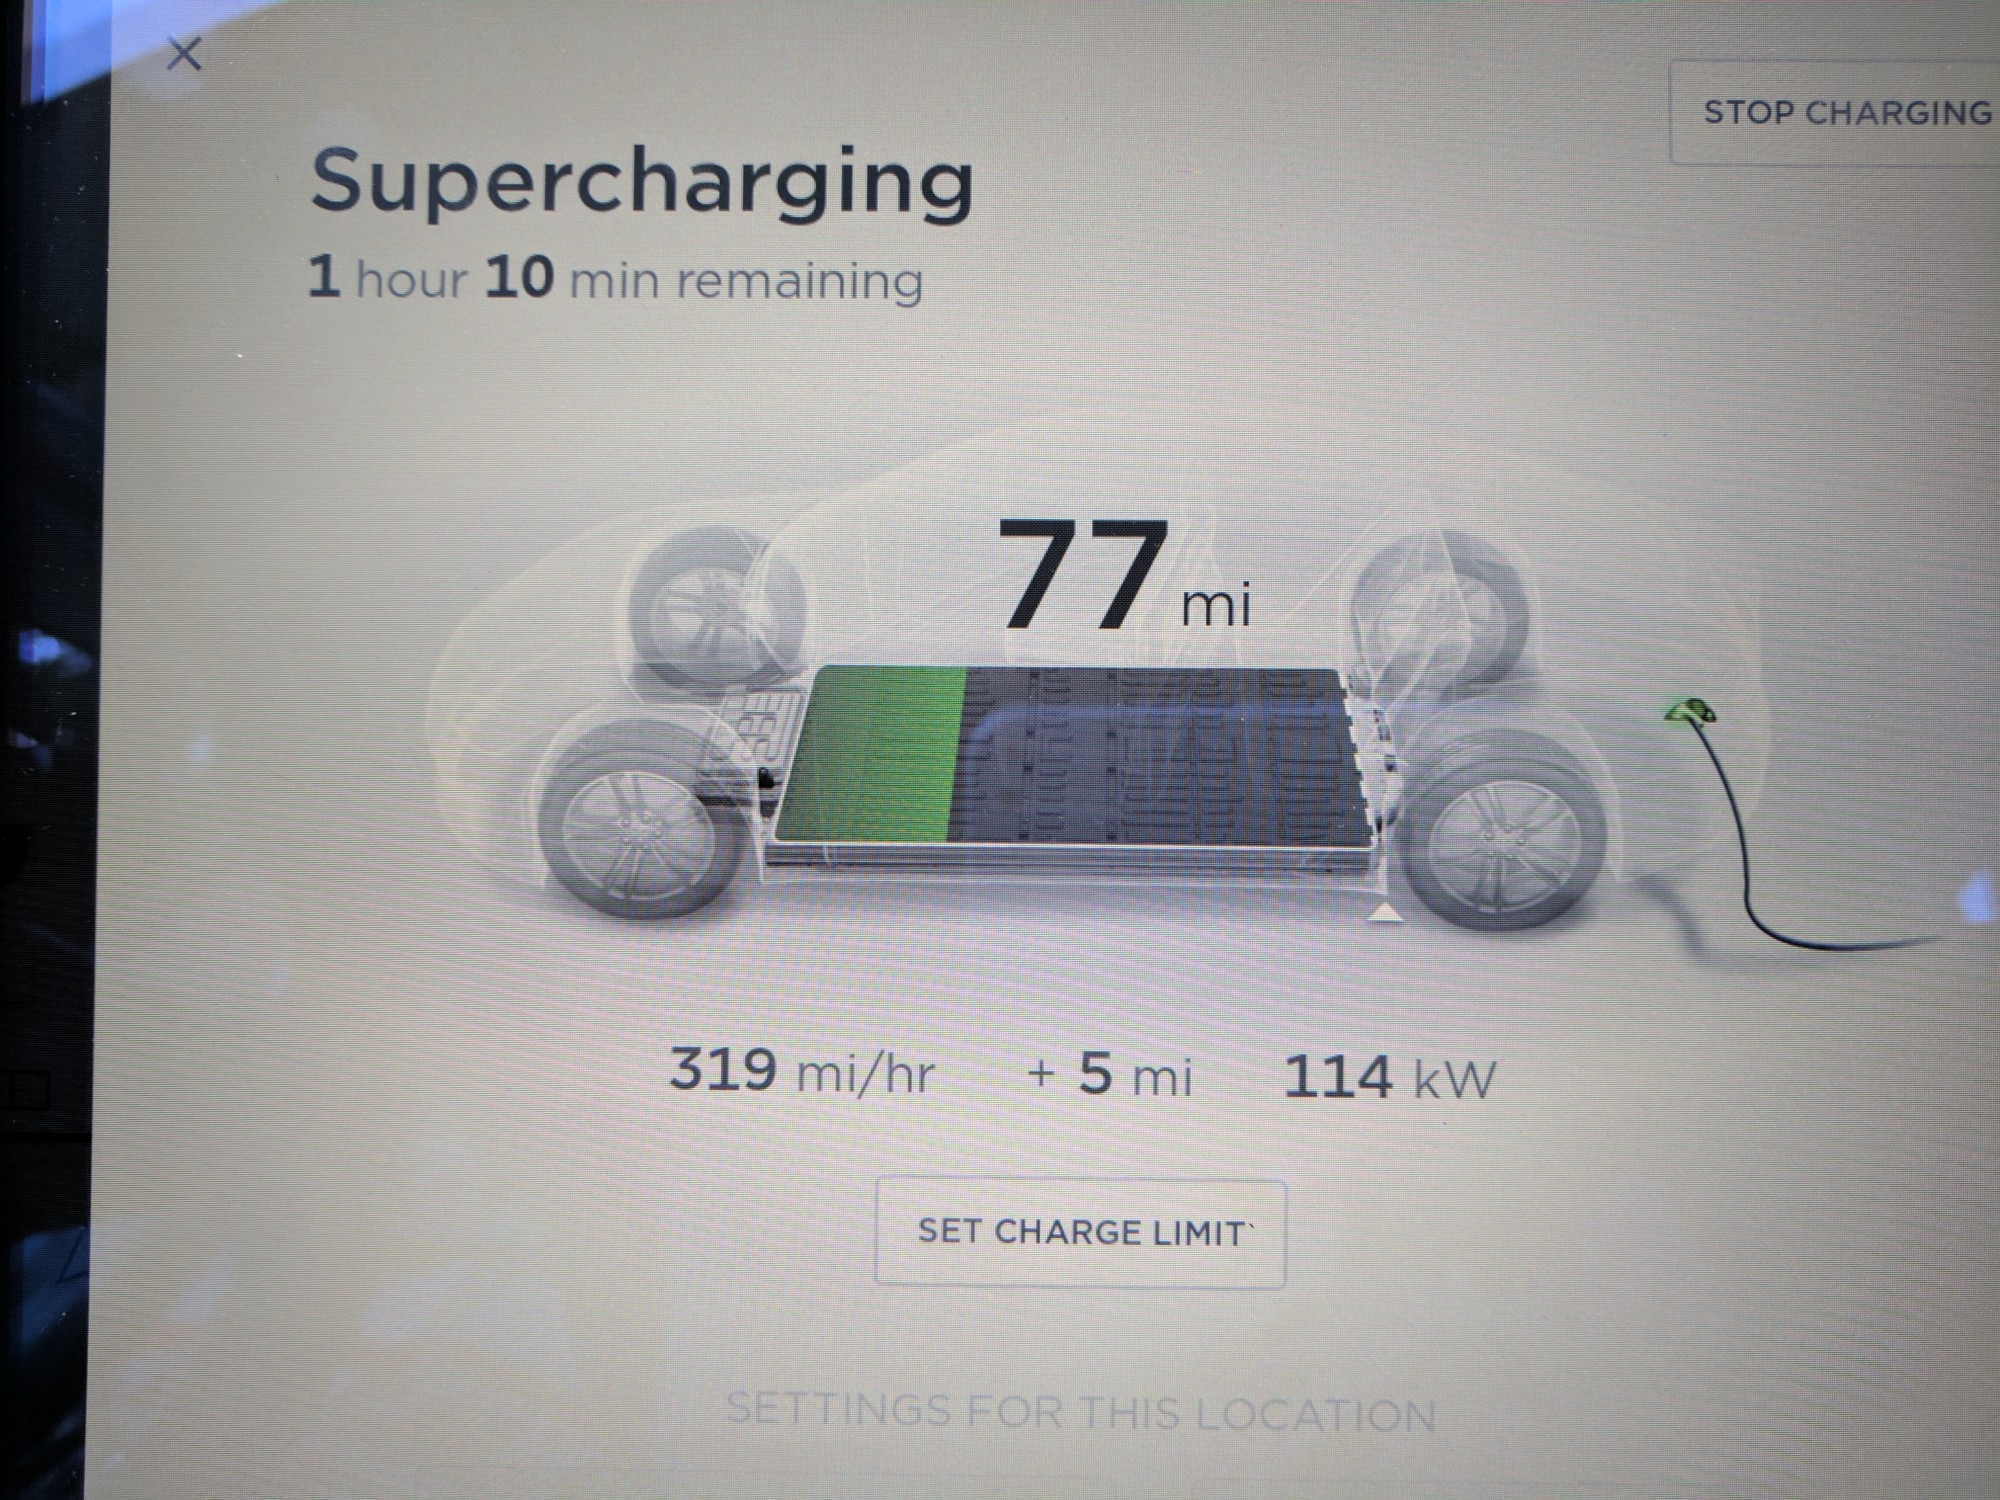 How Fast Does a Supercharger Charge a Tesla? - Don B - Medium